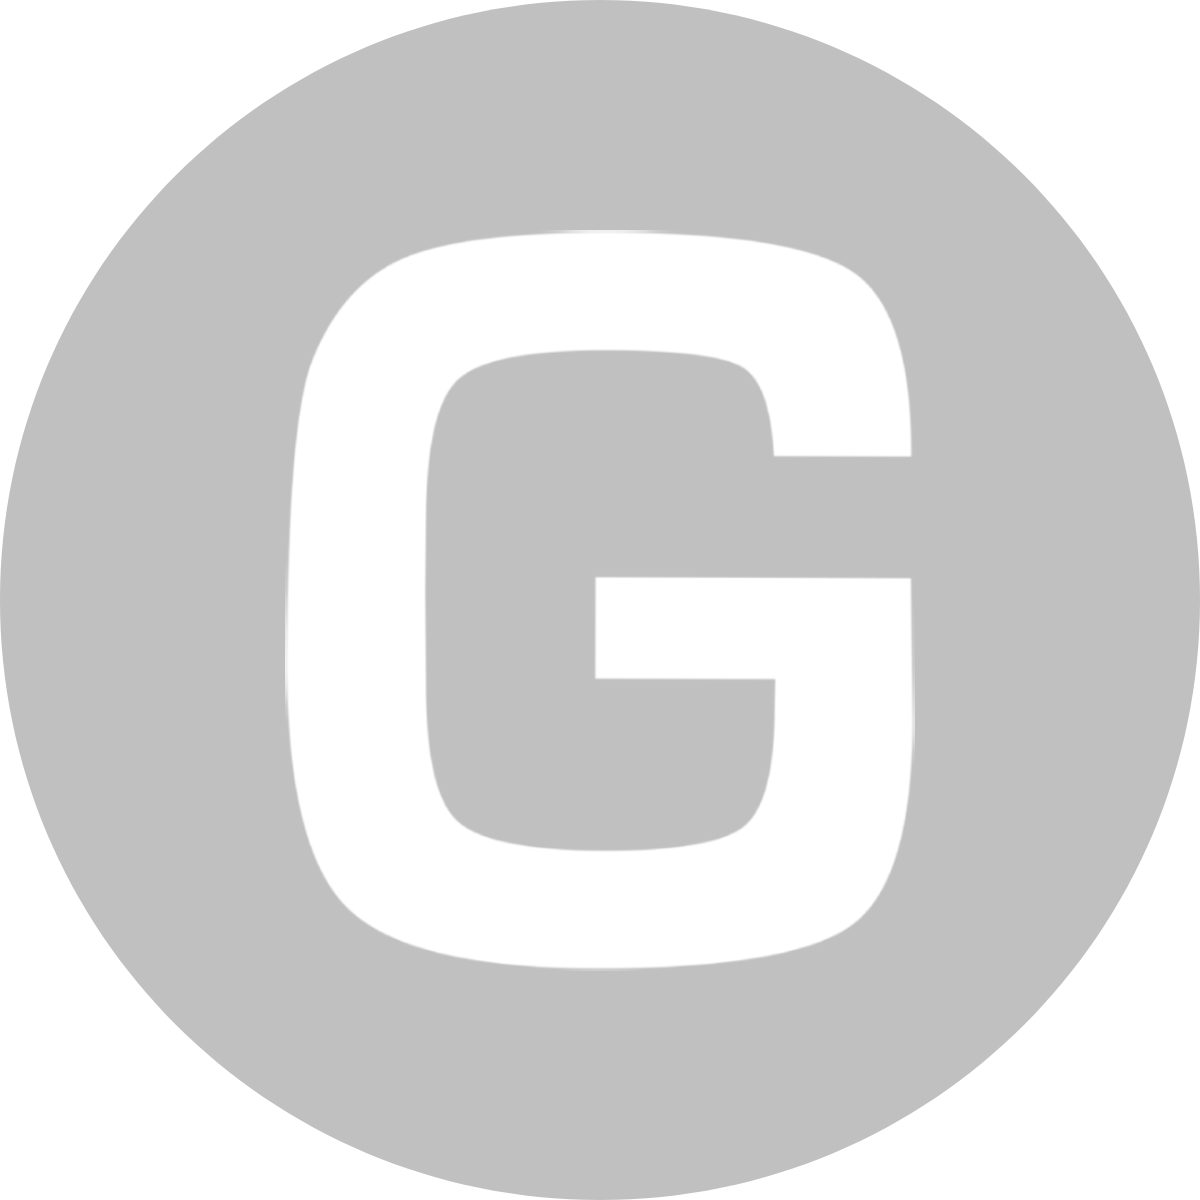 Cobra Jernsett KING Forged Tec 2019 Stål 5-PW